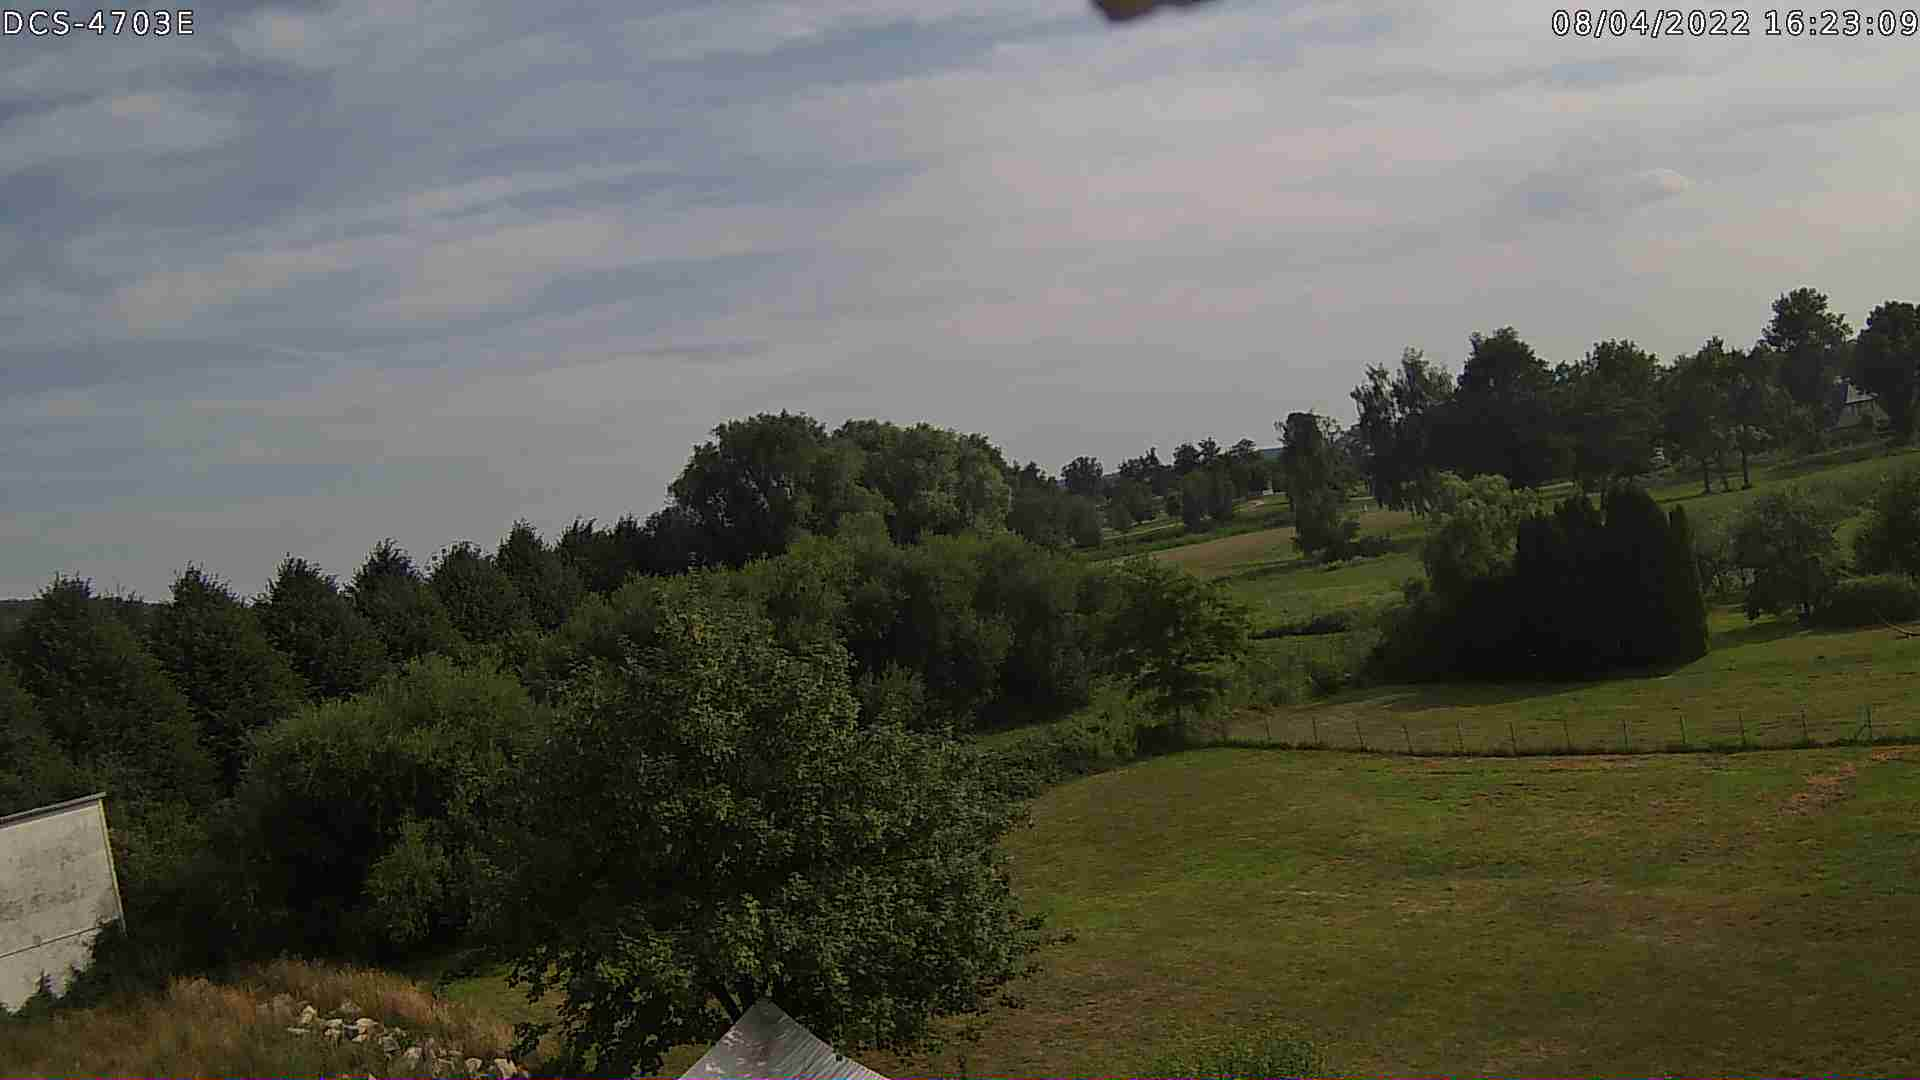 Sellin – Villa to Hus Webcam Live